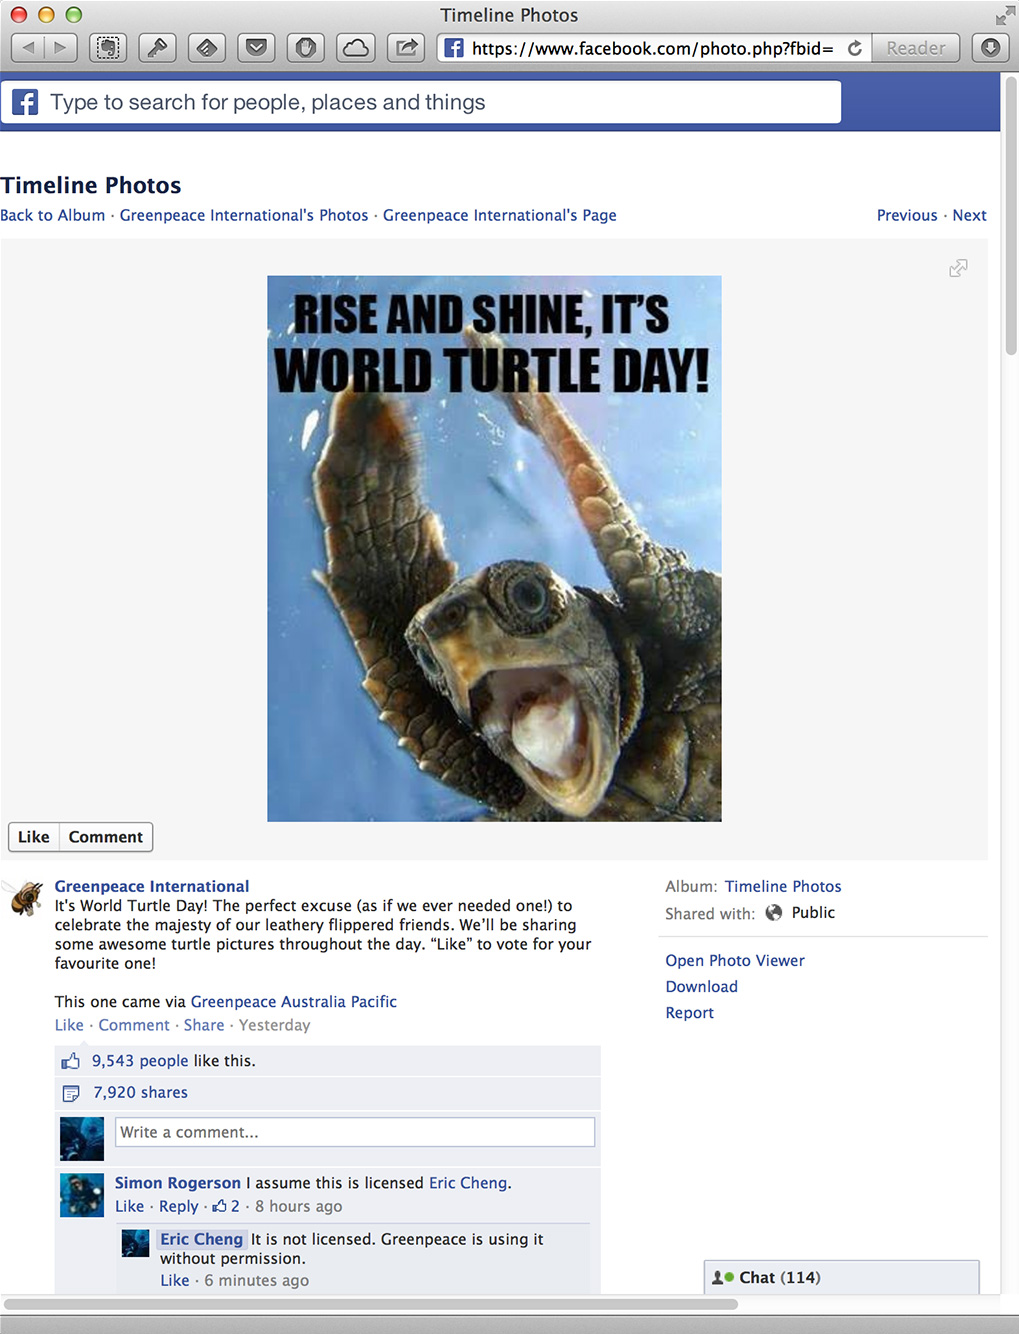 Greenpeace uses my screaming turtle picture without permission